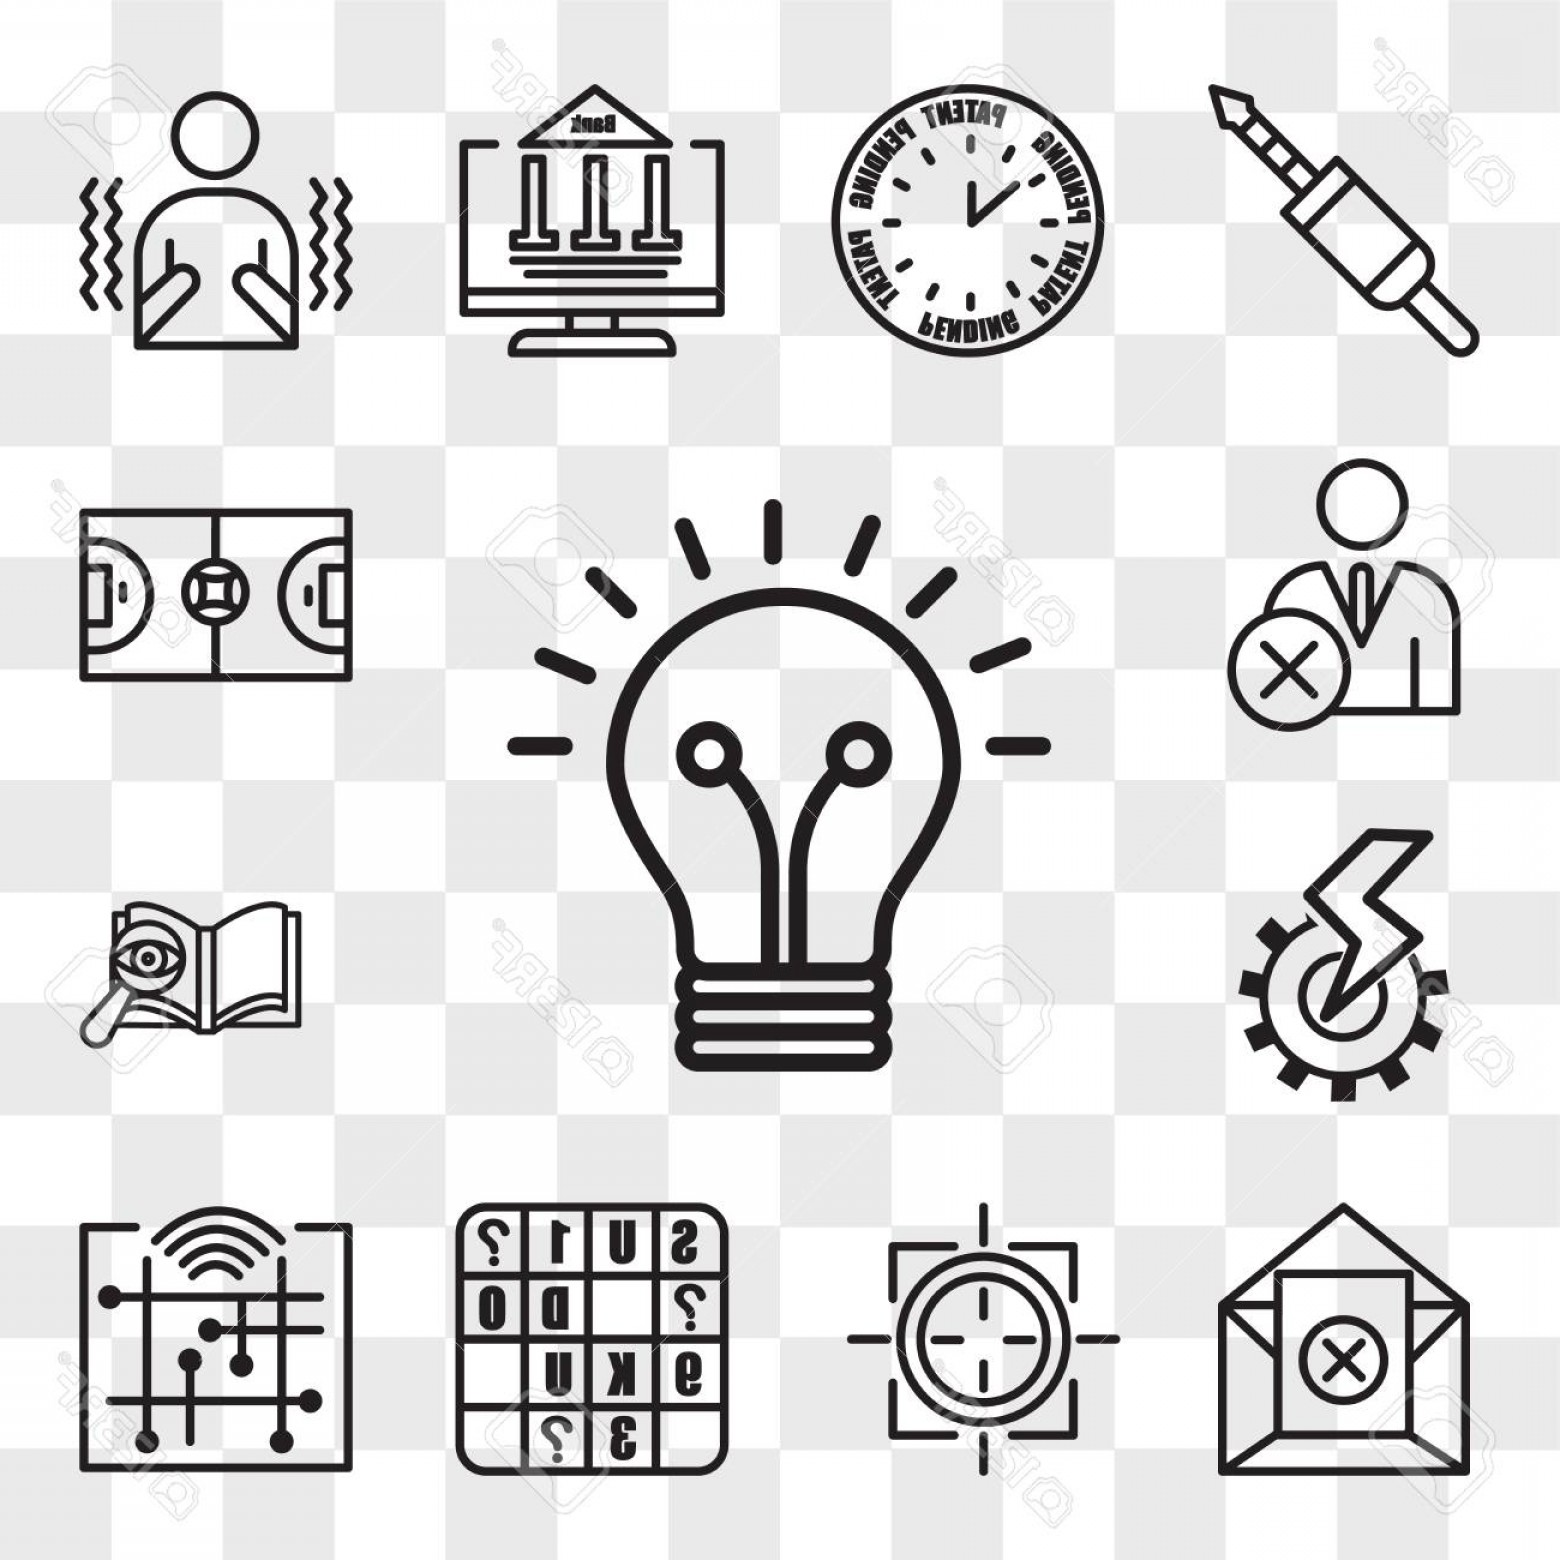 Smarter Vector Art: Photostock Vector Set Of Transparent Editable Icons Such As Smarter Digitalisation Sudoku Sniper Zoom Unsubscribe P